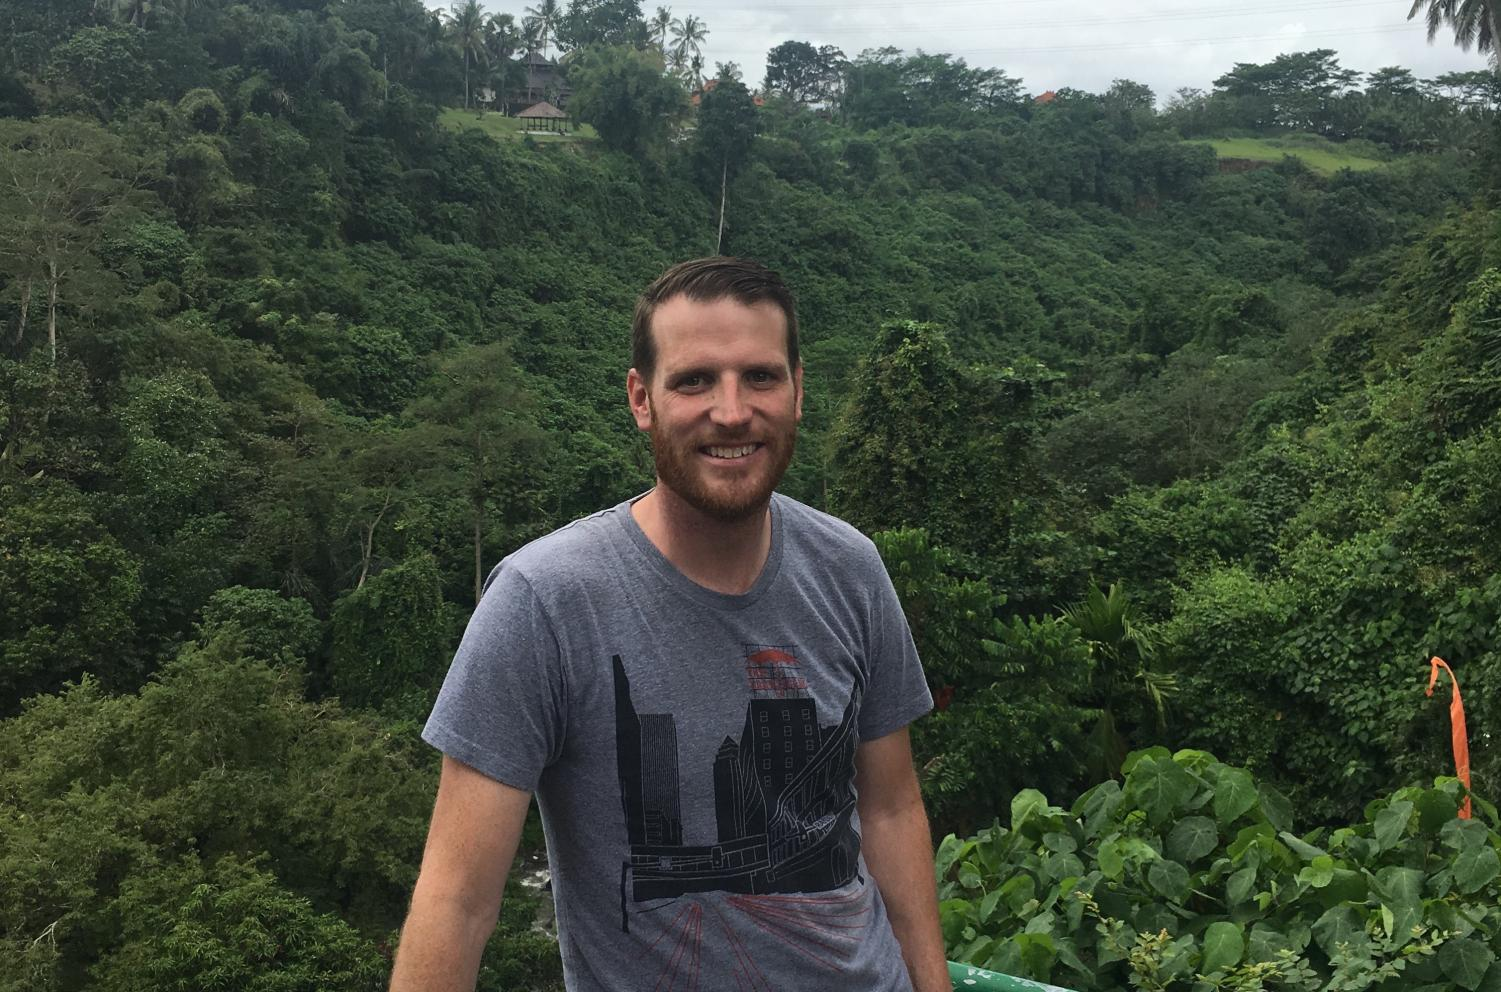 Mr. McAteer on a trip to Bali this past summer.